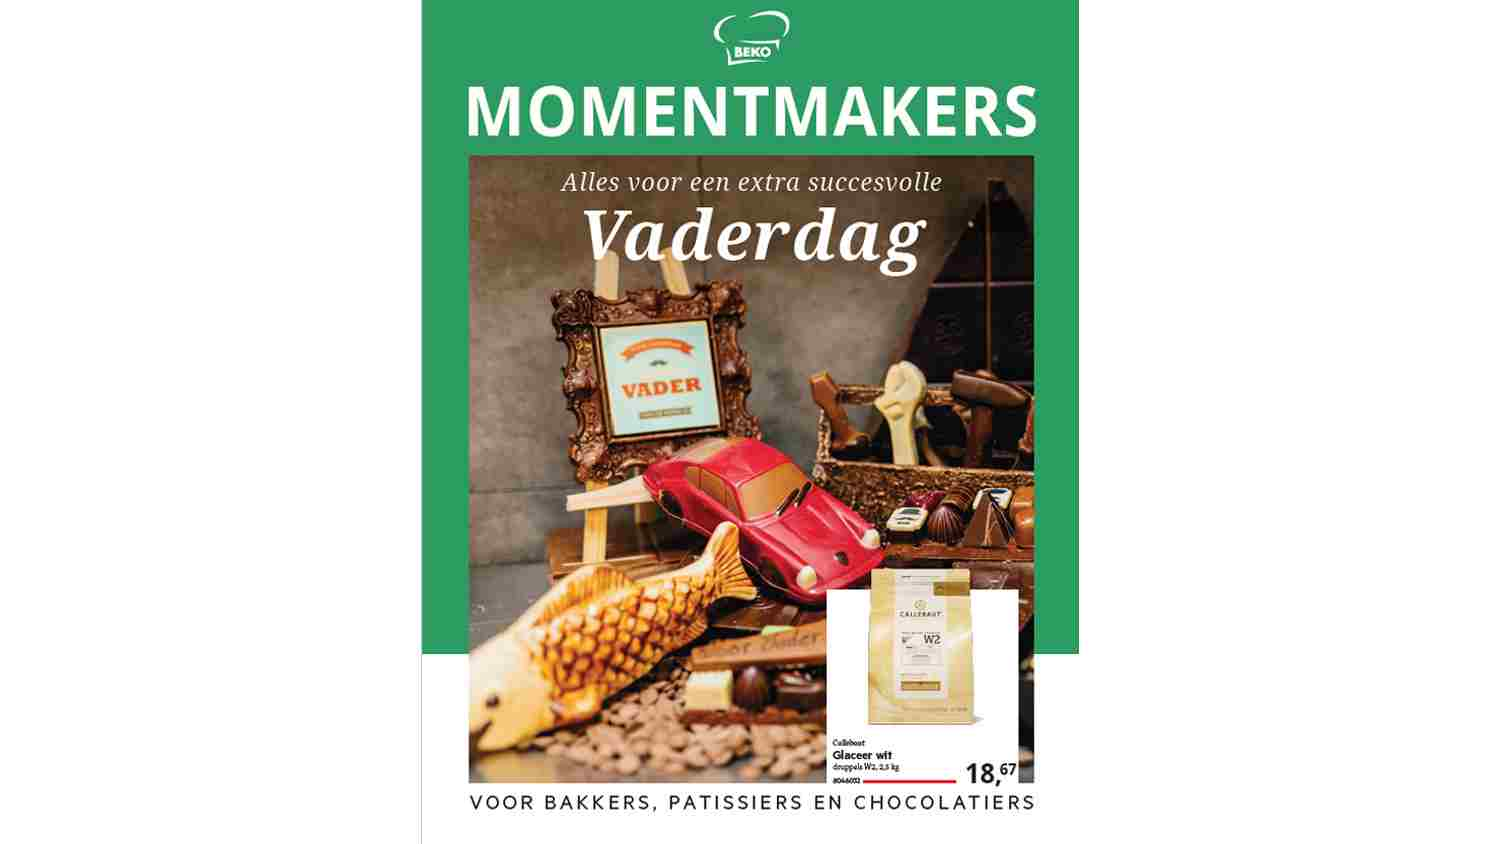 Momentmakers Vaderdag